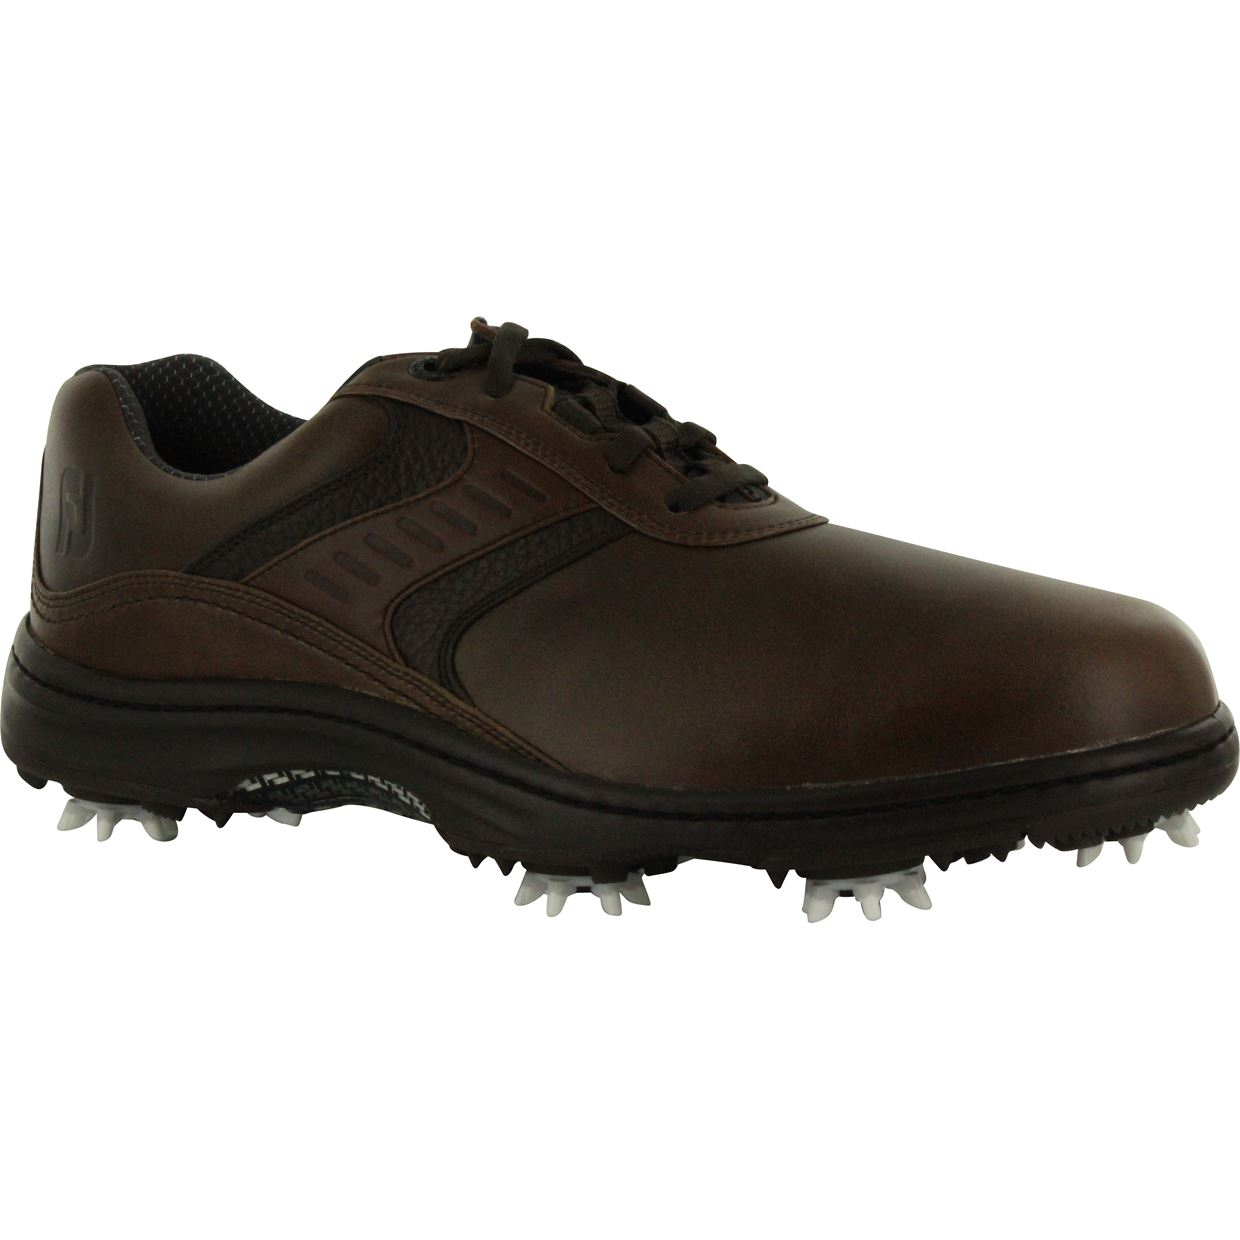 Closeout Golf Shoes For Sale